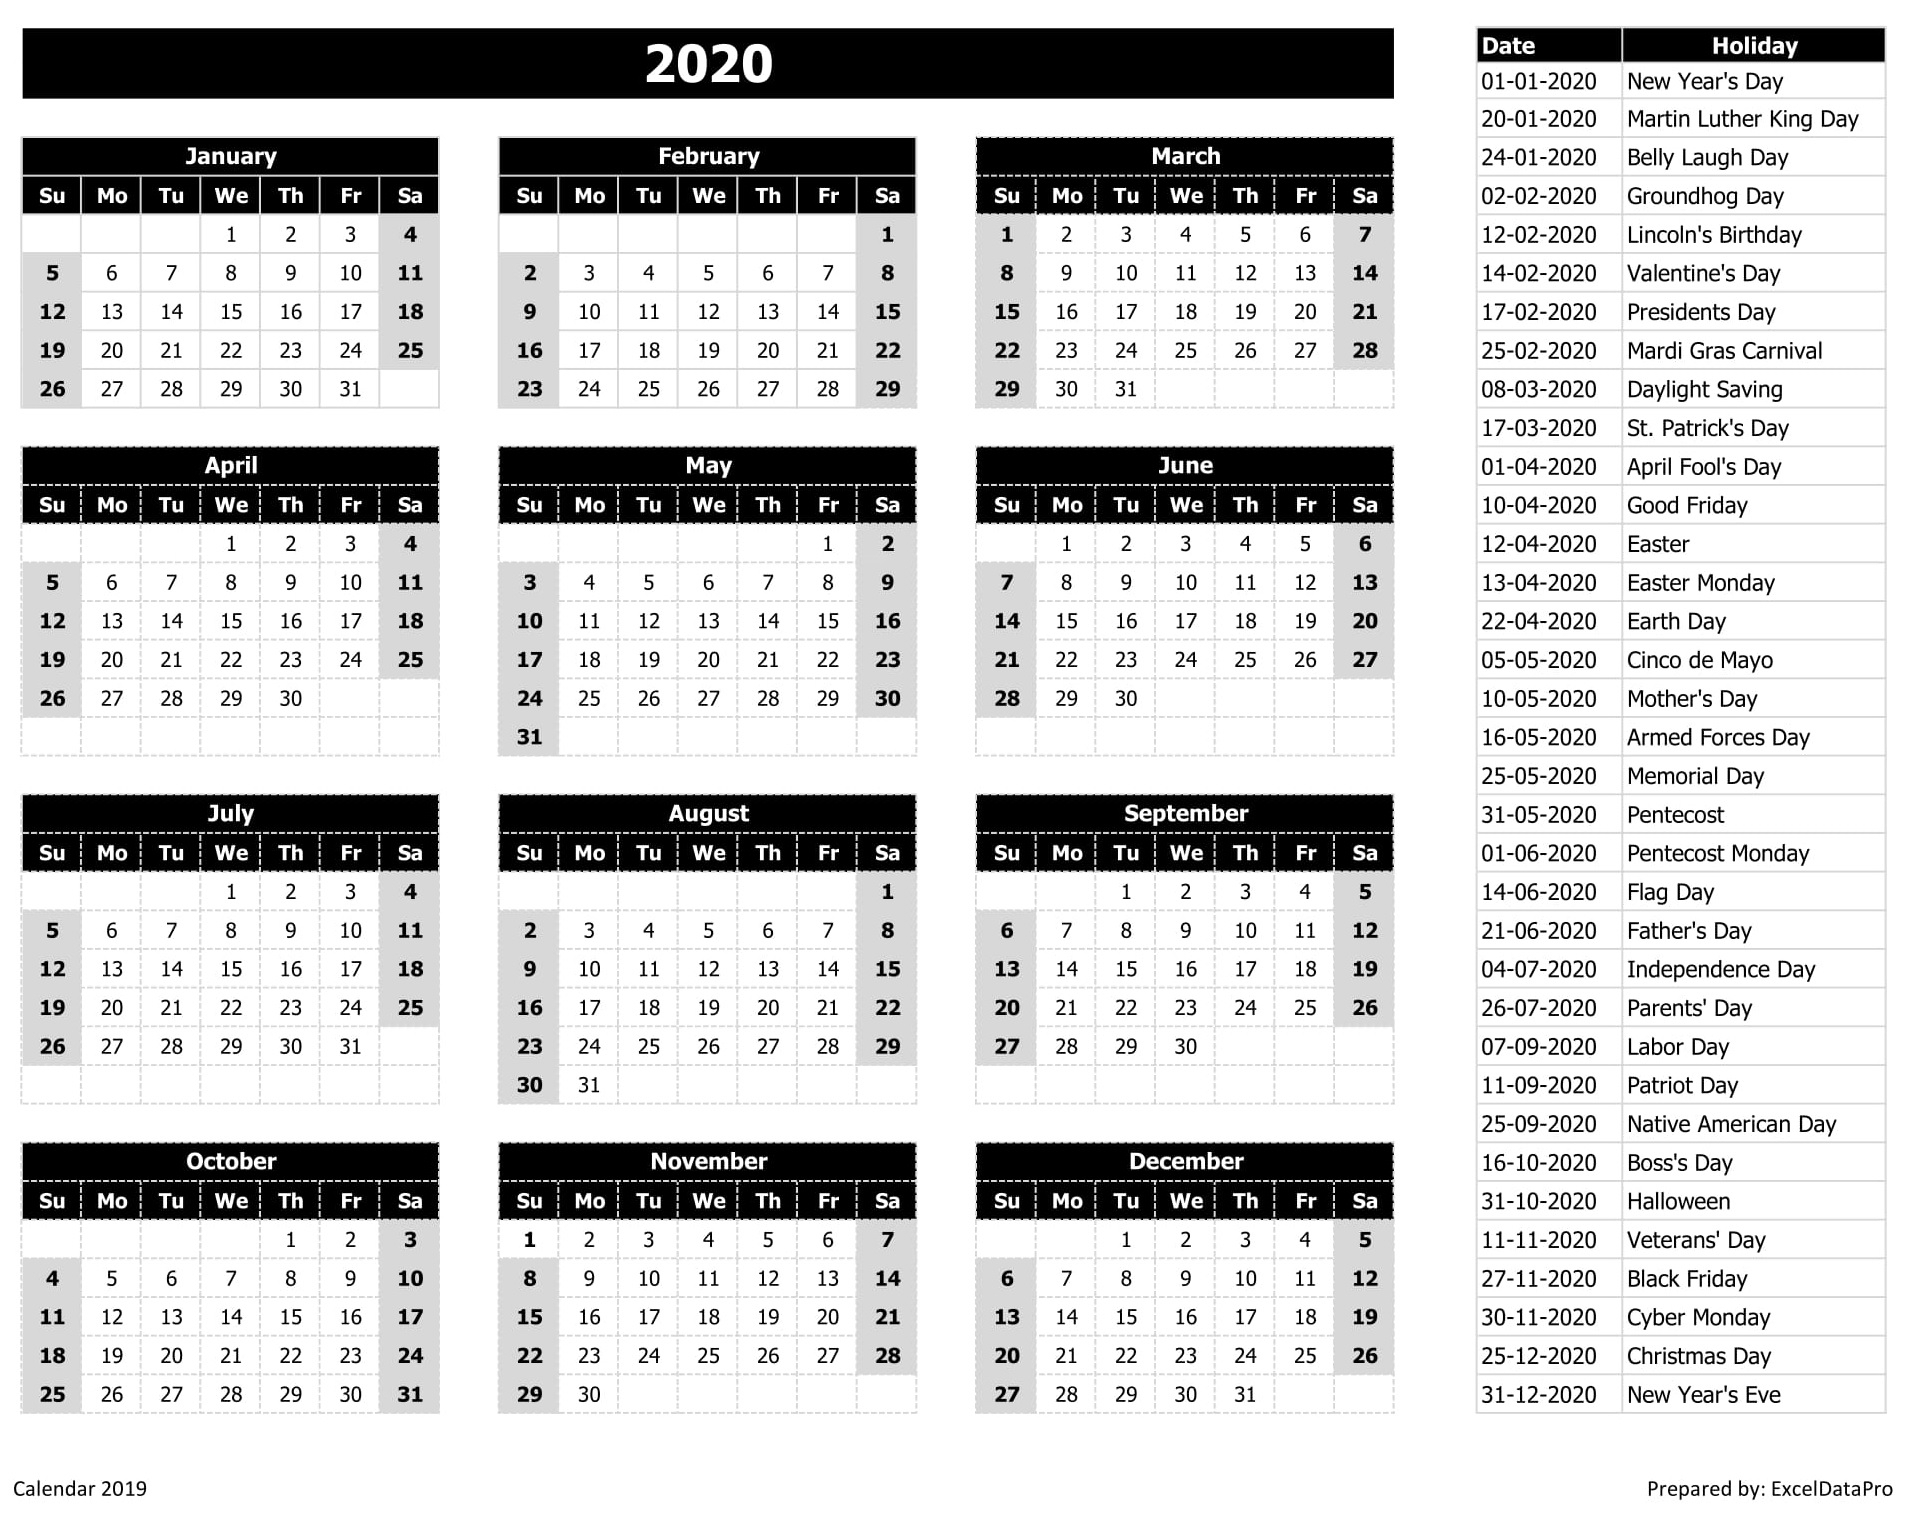 2020 Calendar Excel Templates, Printable Pdfs & Images - Exceldatapro